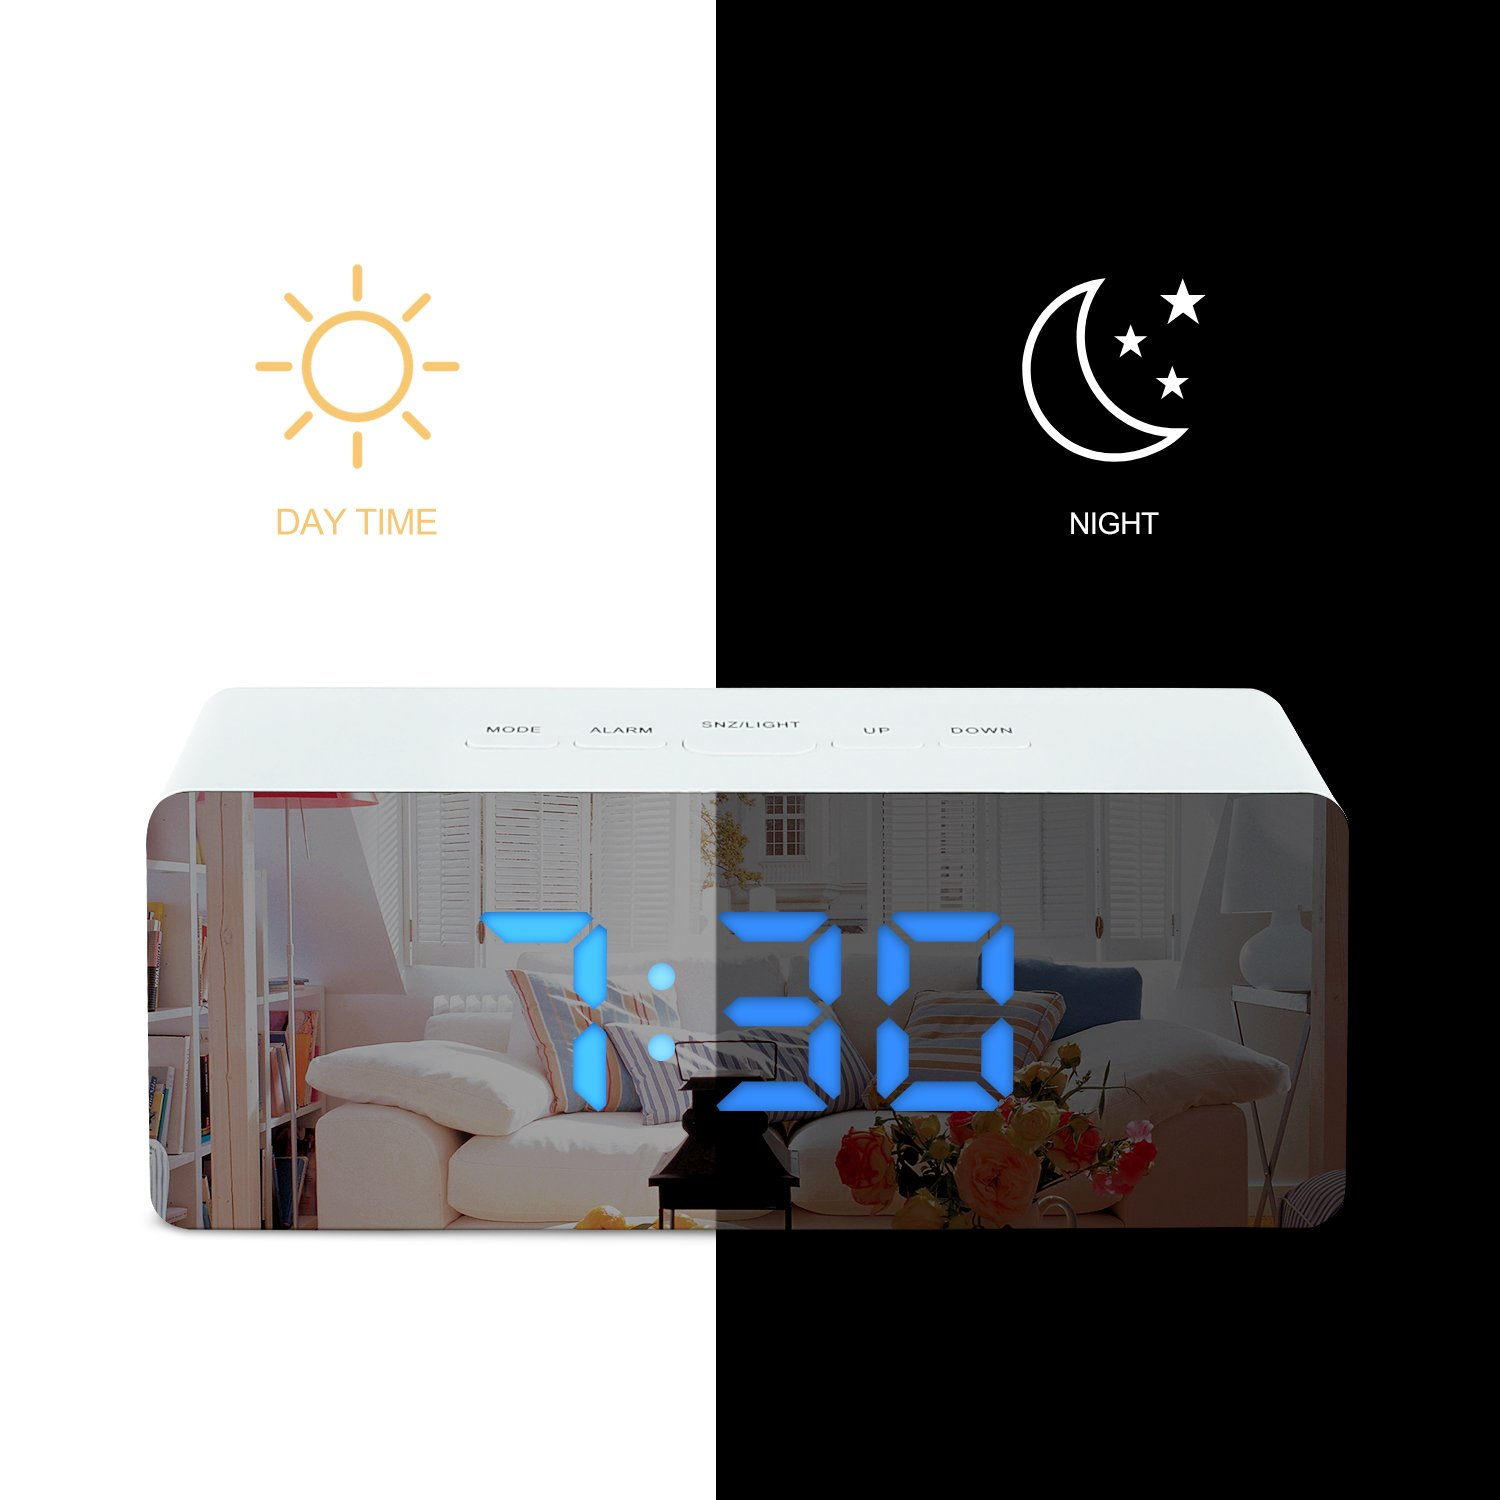 Shayson Digital Alarm Clock, LED Display Clock Best Makeup Bedroom Mirror Travel Alarm Office Bedroom Clock, Dual Alarm With Snooze, Dimmer Control, Support Battery Powered And With Usb Port-Blue